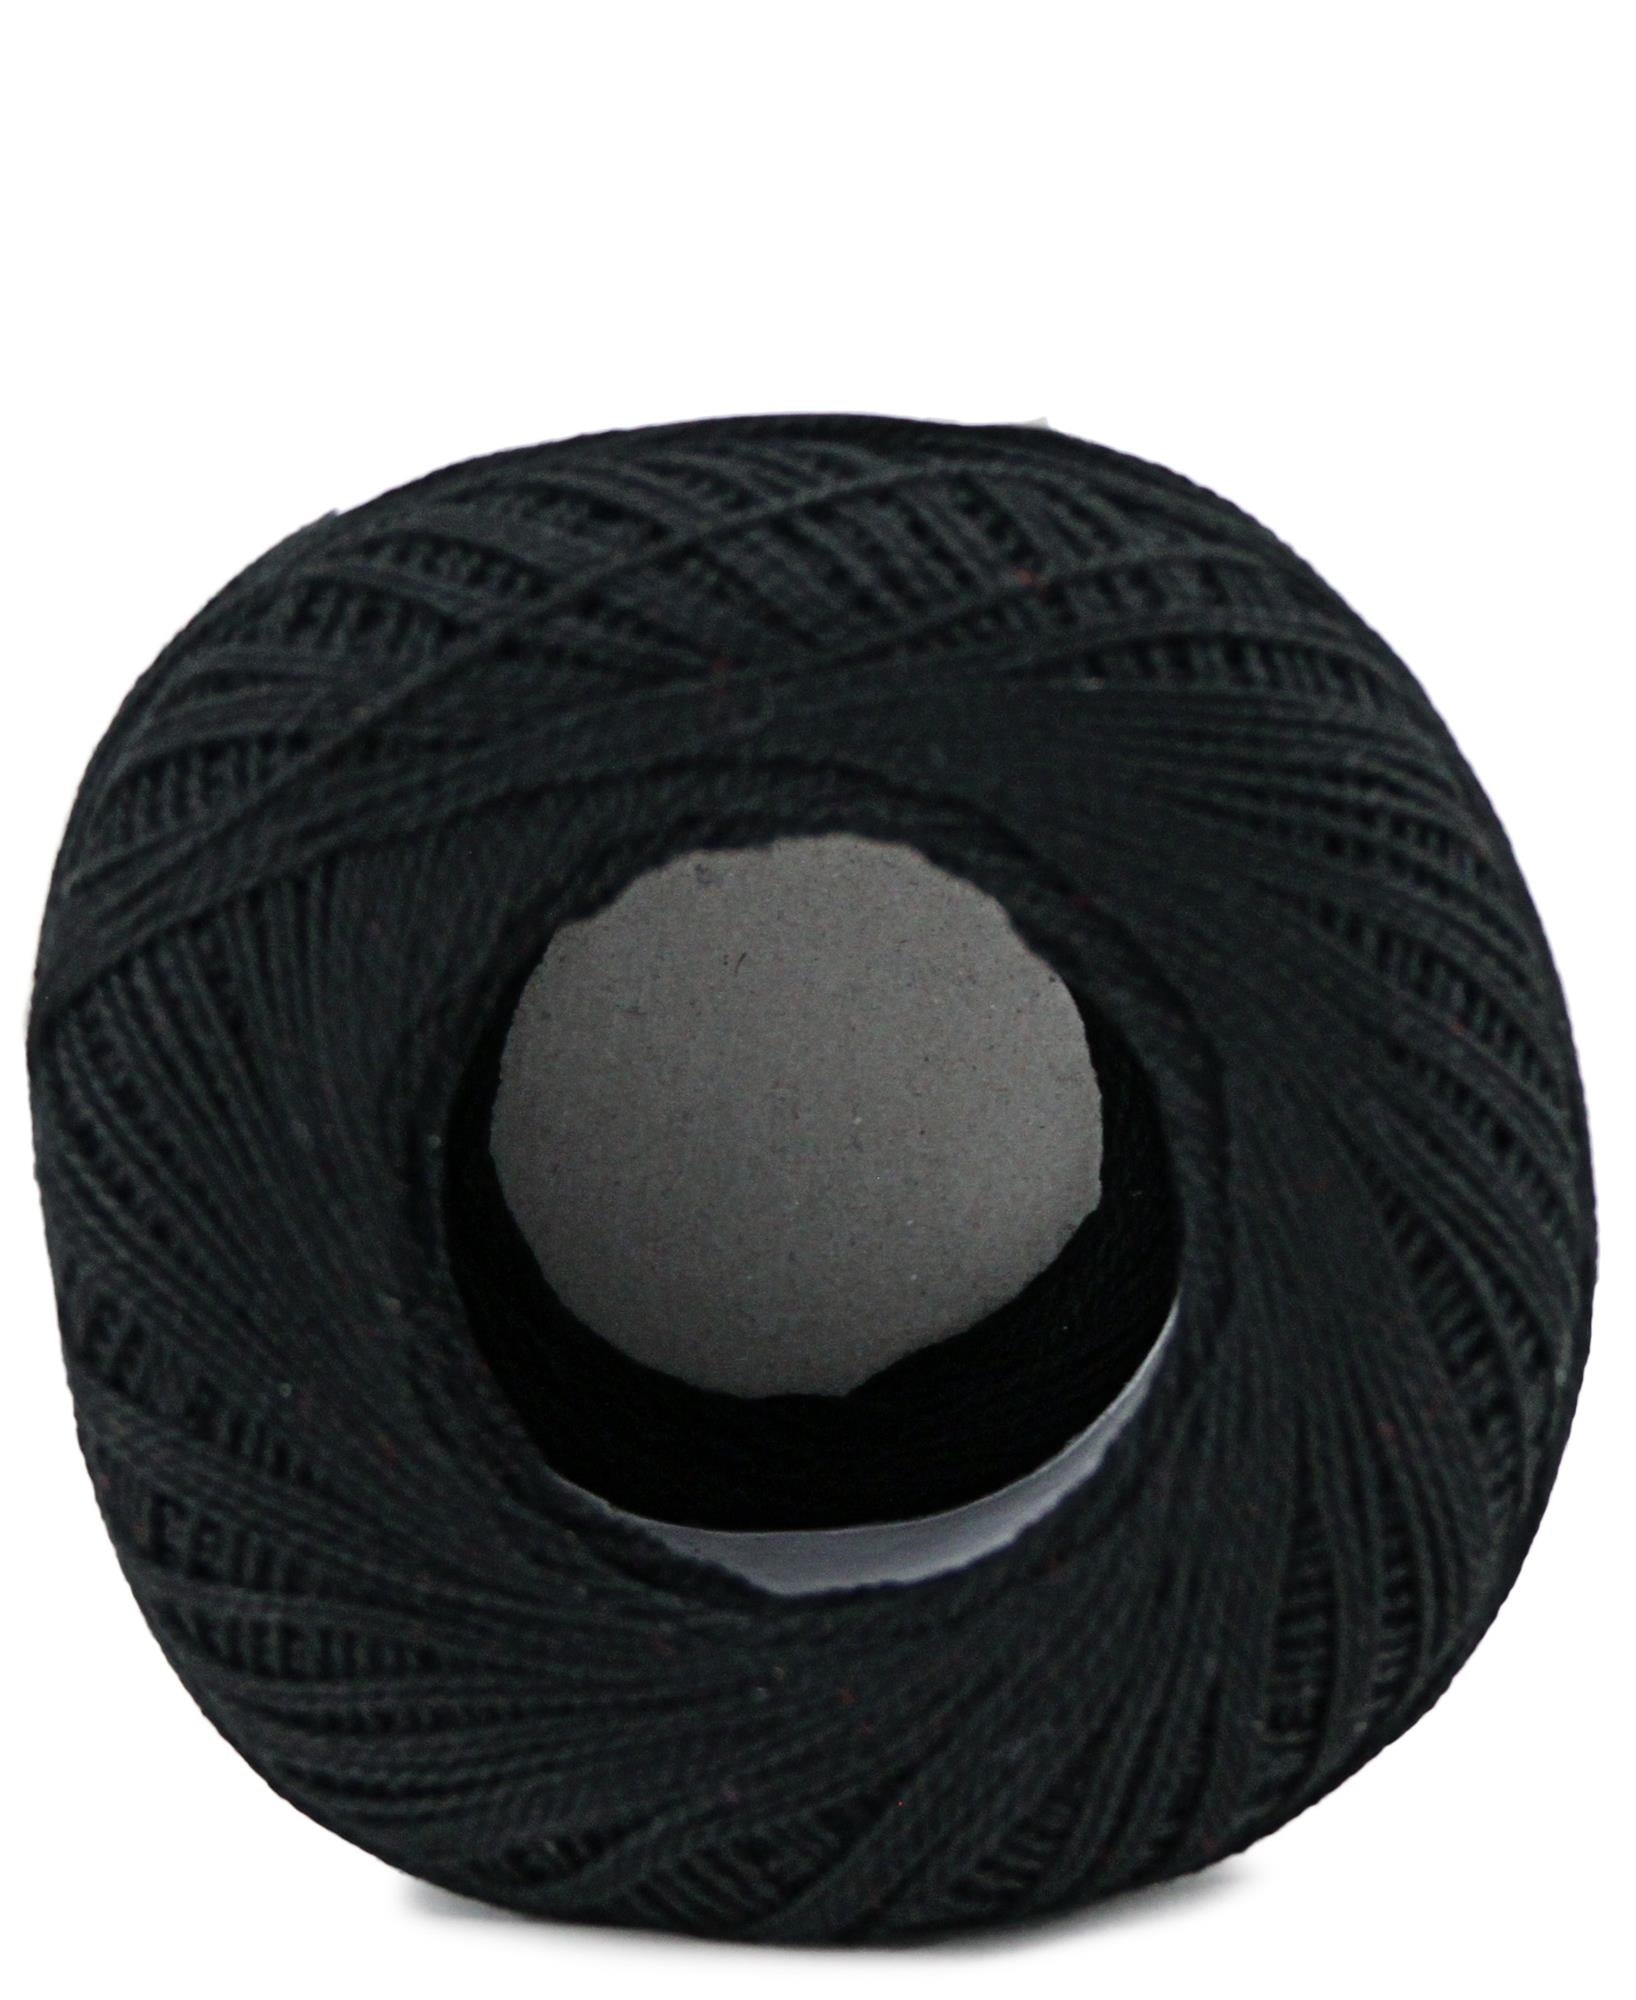 Crochet Cotton - Black